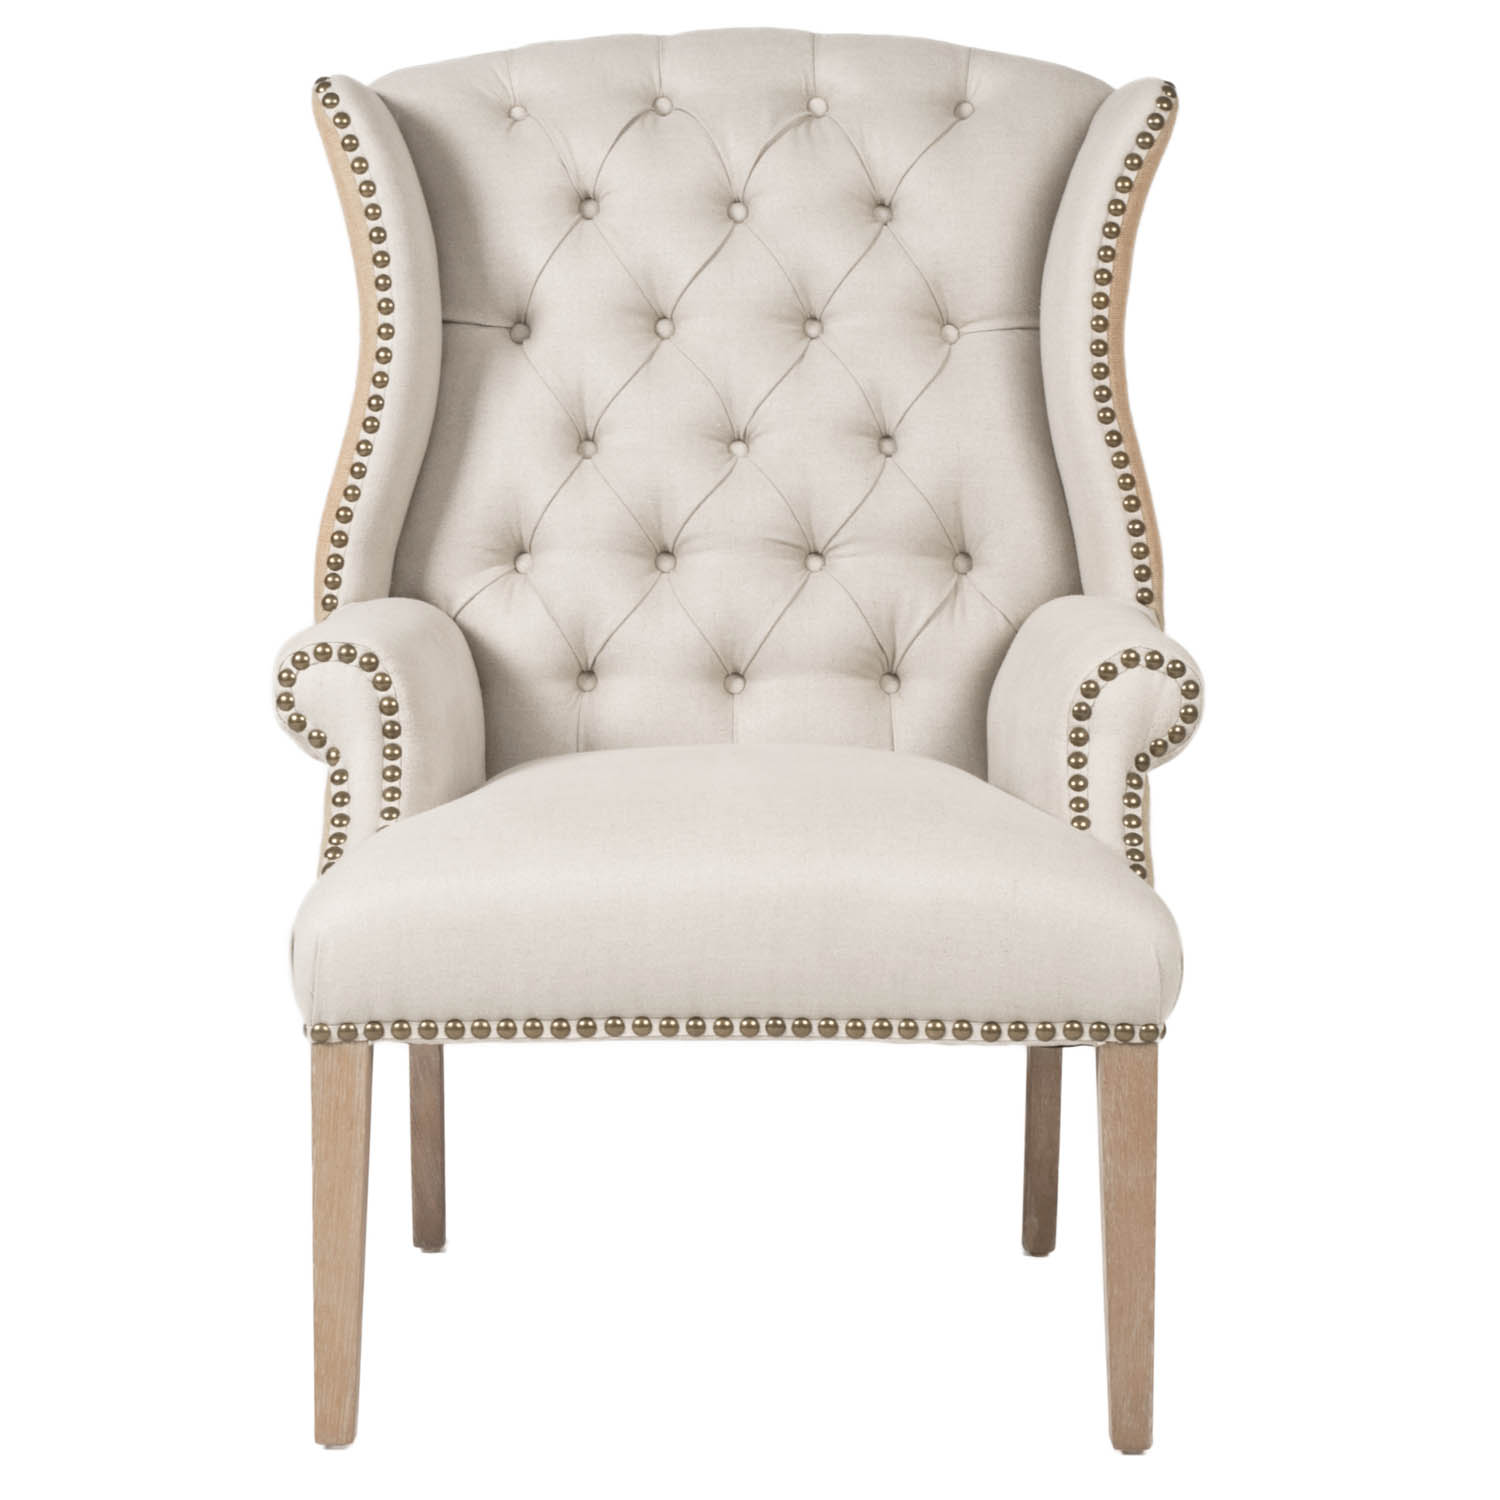 How to Make A Tufted Chair | Tufted Chair | Tufted Blue Chair